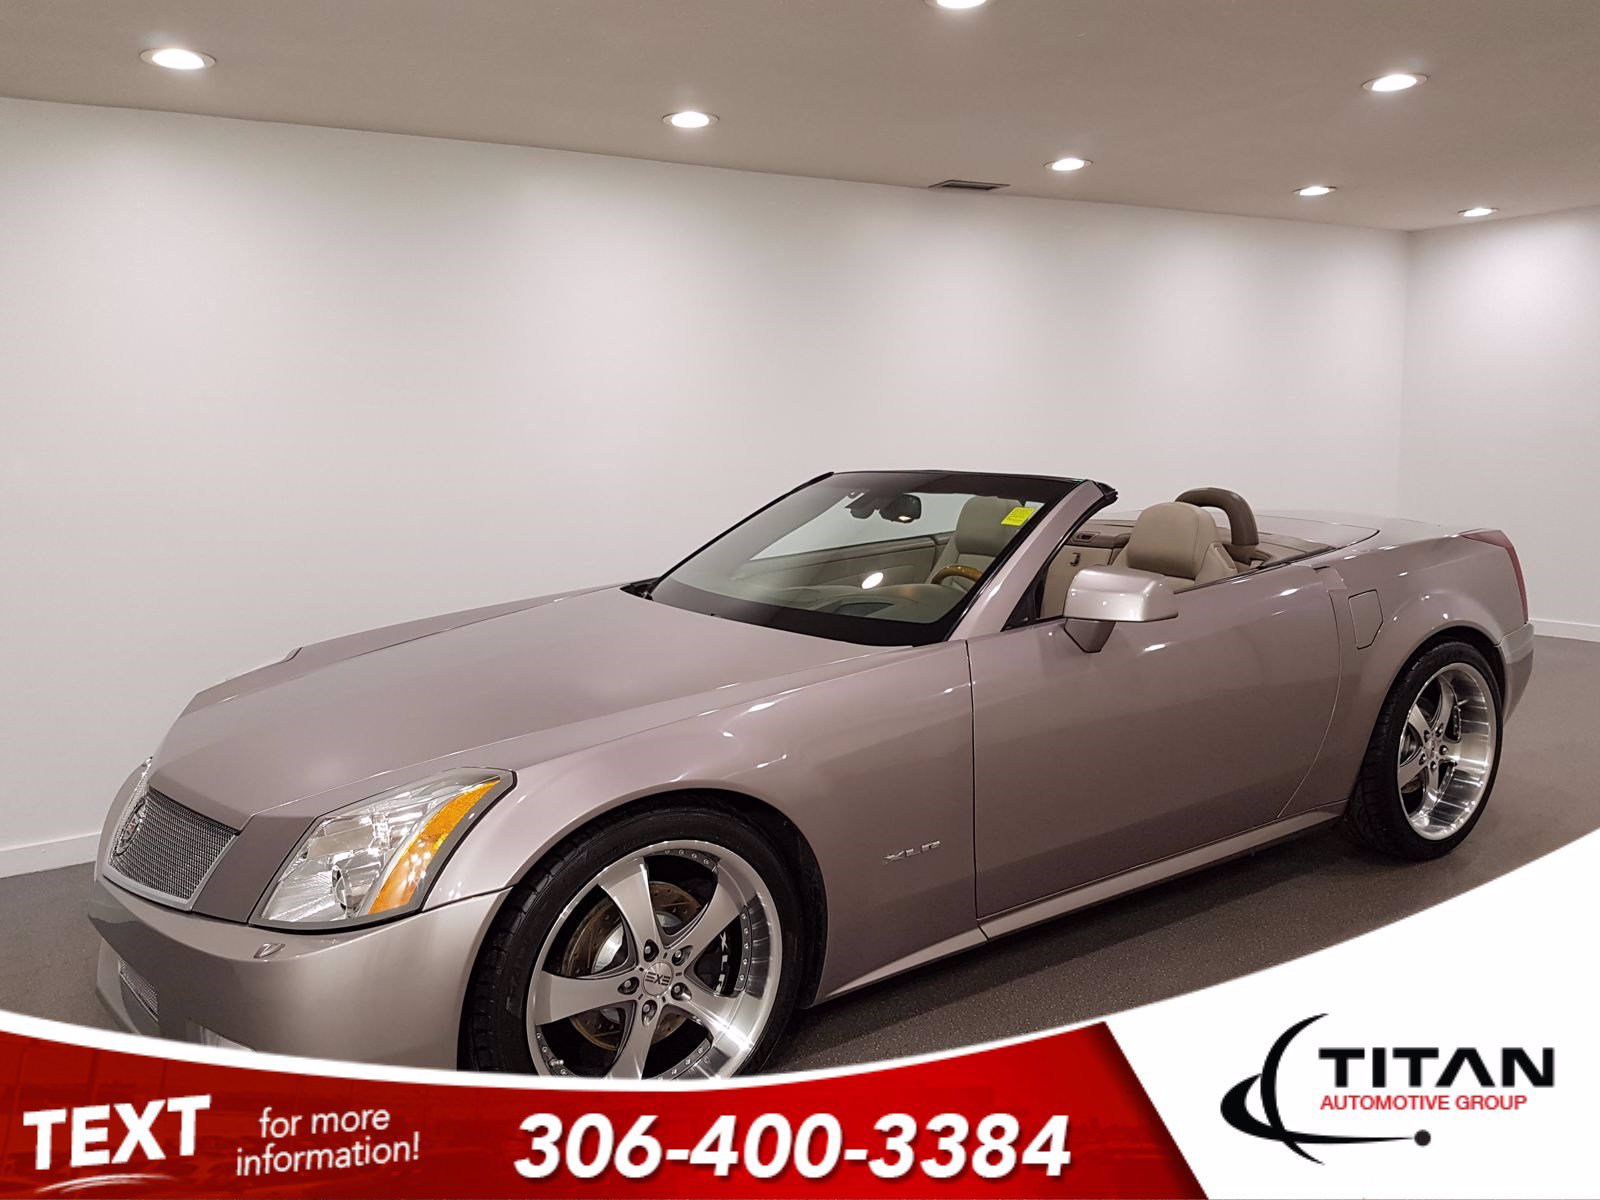 Pre-Owned 2005 Cadillac XLR Local | 4.6L V8 320HP| Convertible | Leather | Navigation | Bose | Rare